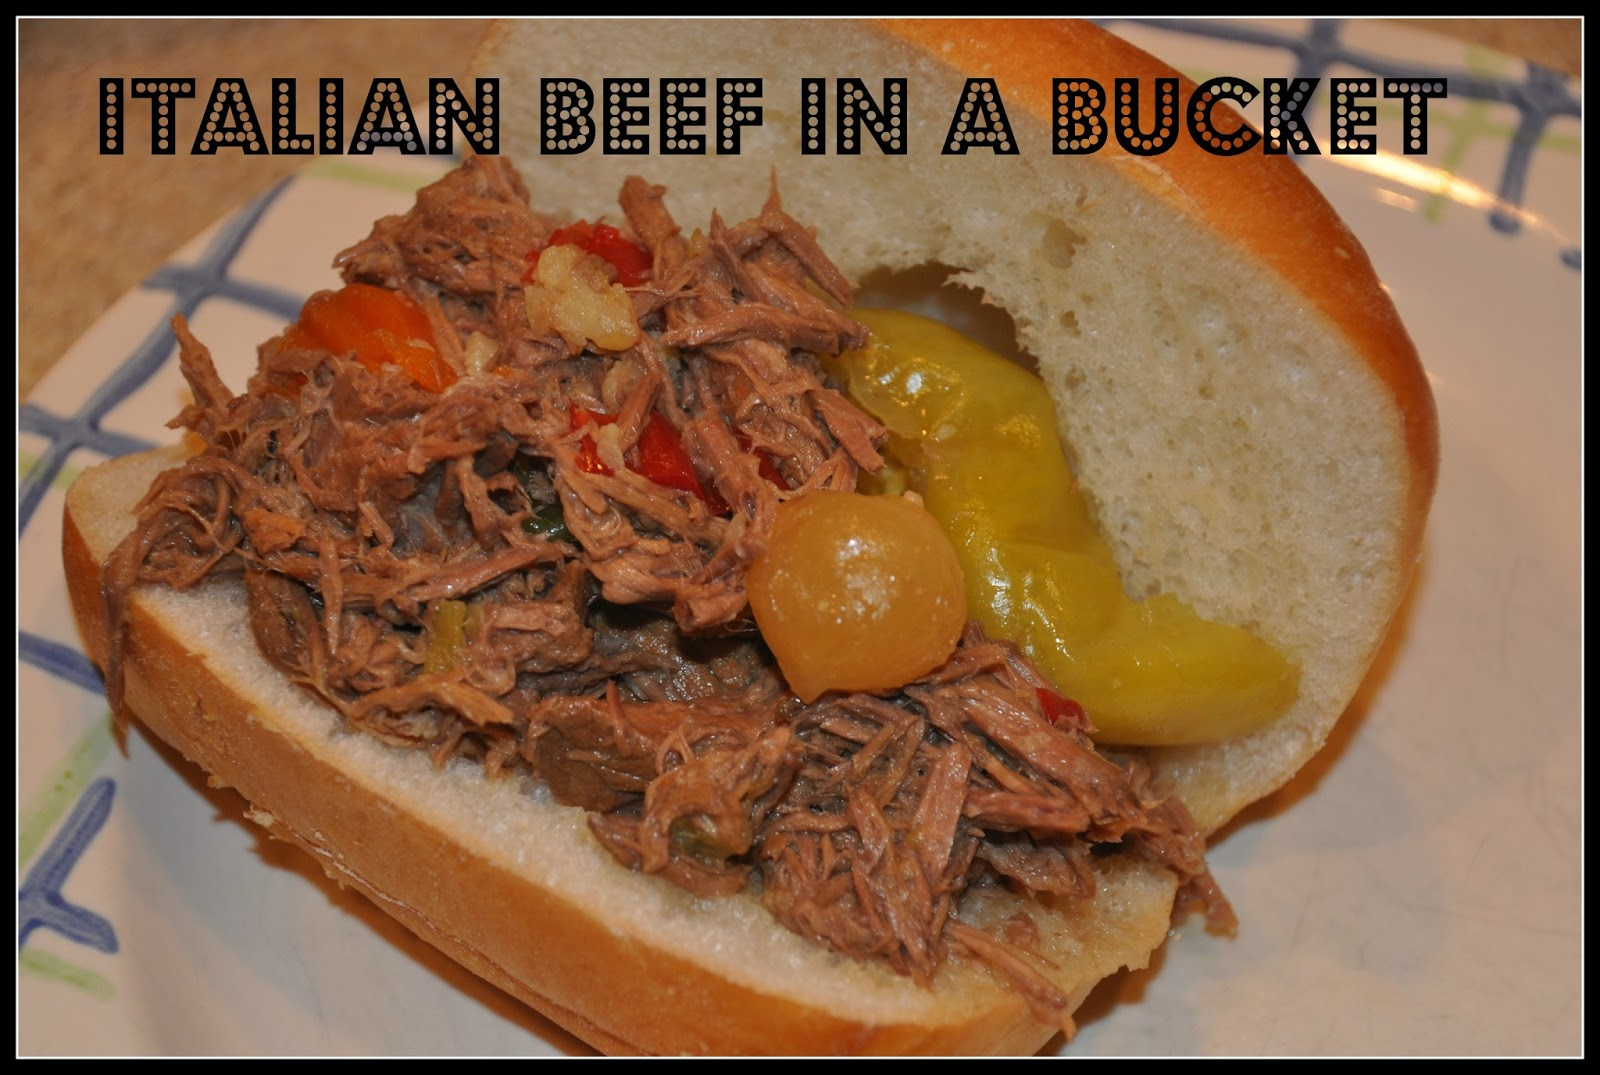 ... kids and lots of pigs: welcome to my pig pen: Italian Beef in a Bucket